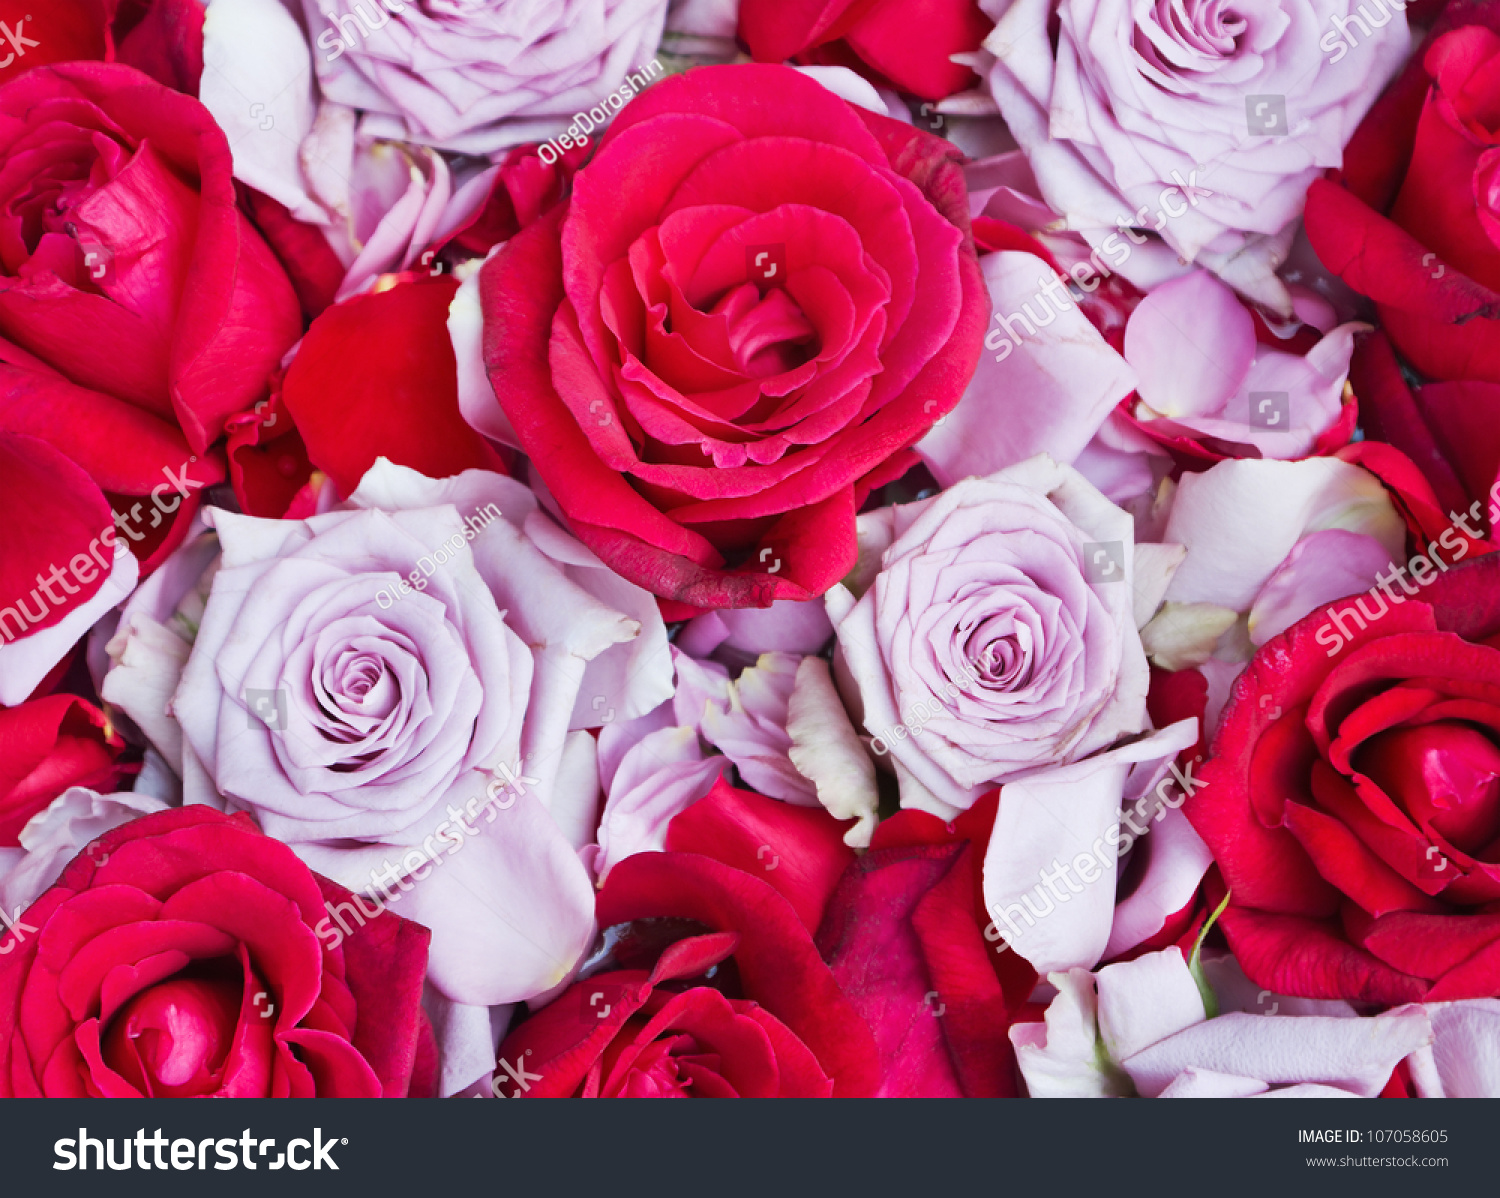 background roses different varieties colors stock photo 107058605 shutterstock. Black Bedroom Furniture Sets. Home Design Ideas